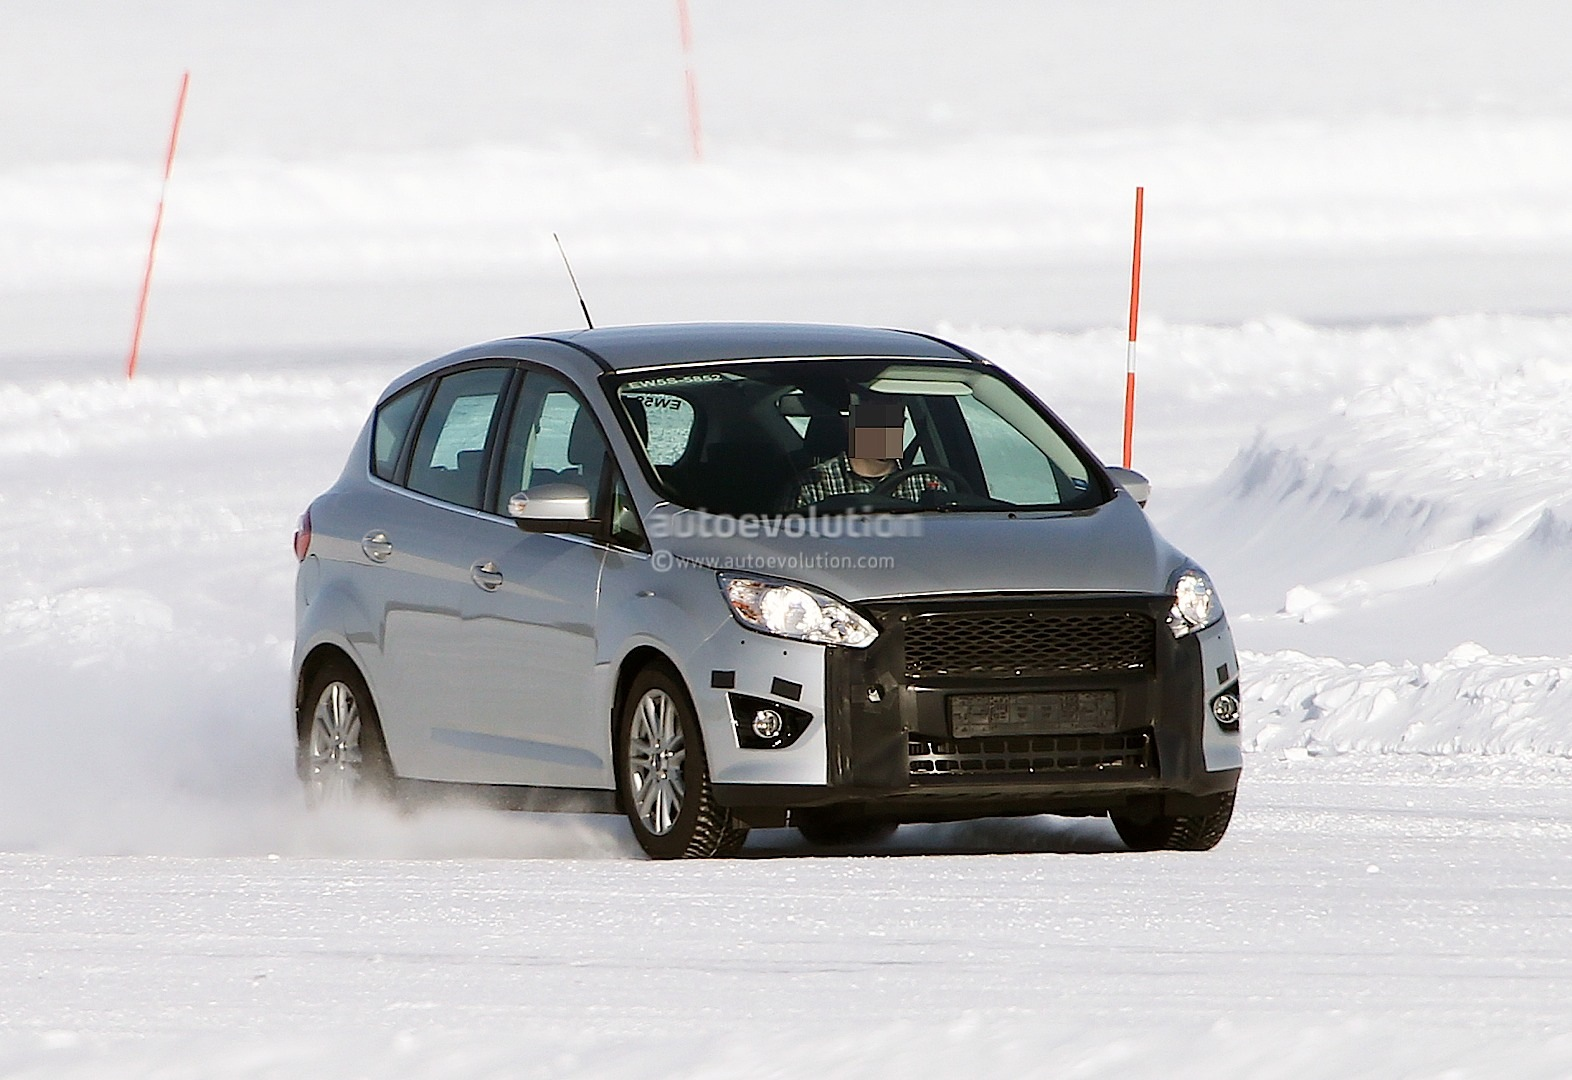 spyshots-2014-ford-c-max-getting-aston-martin-facelift_2.jpg